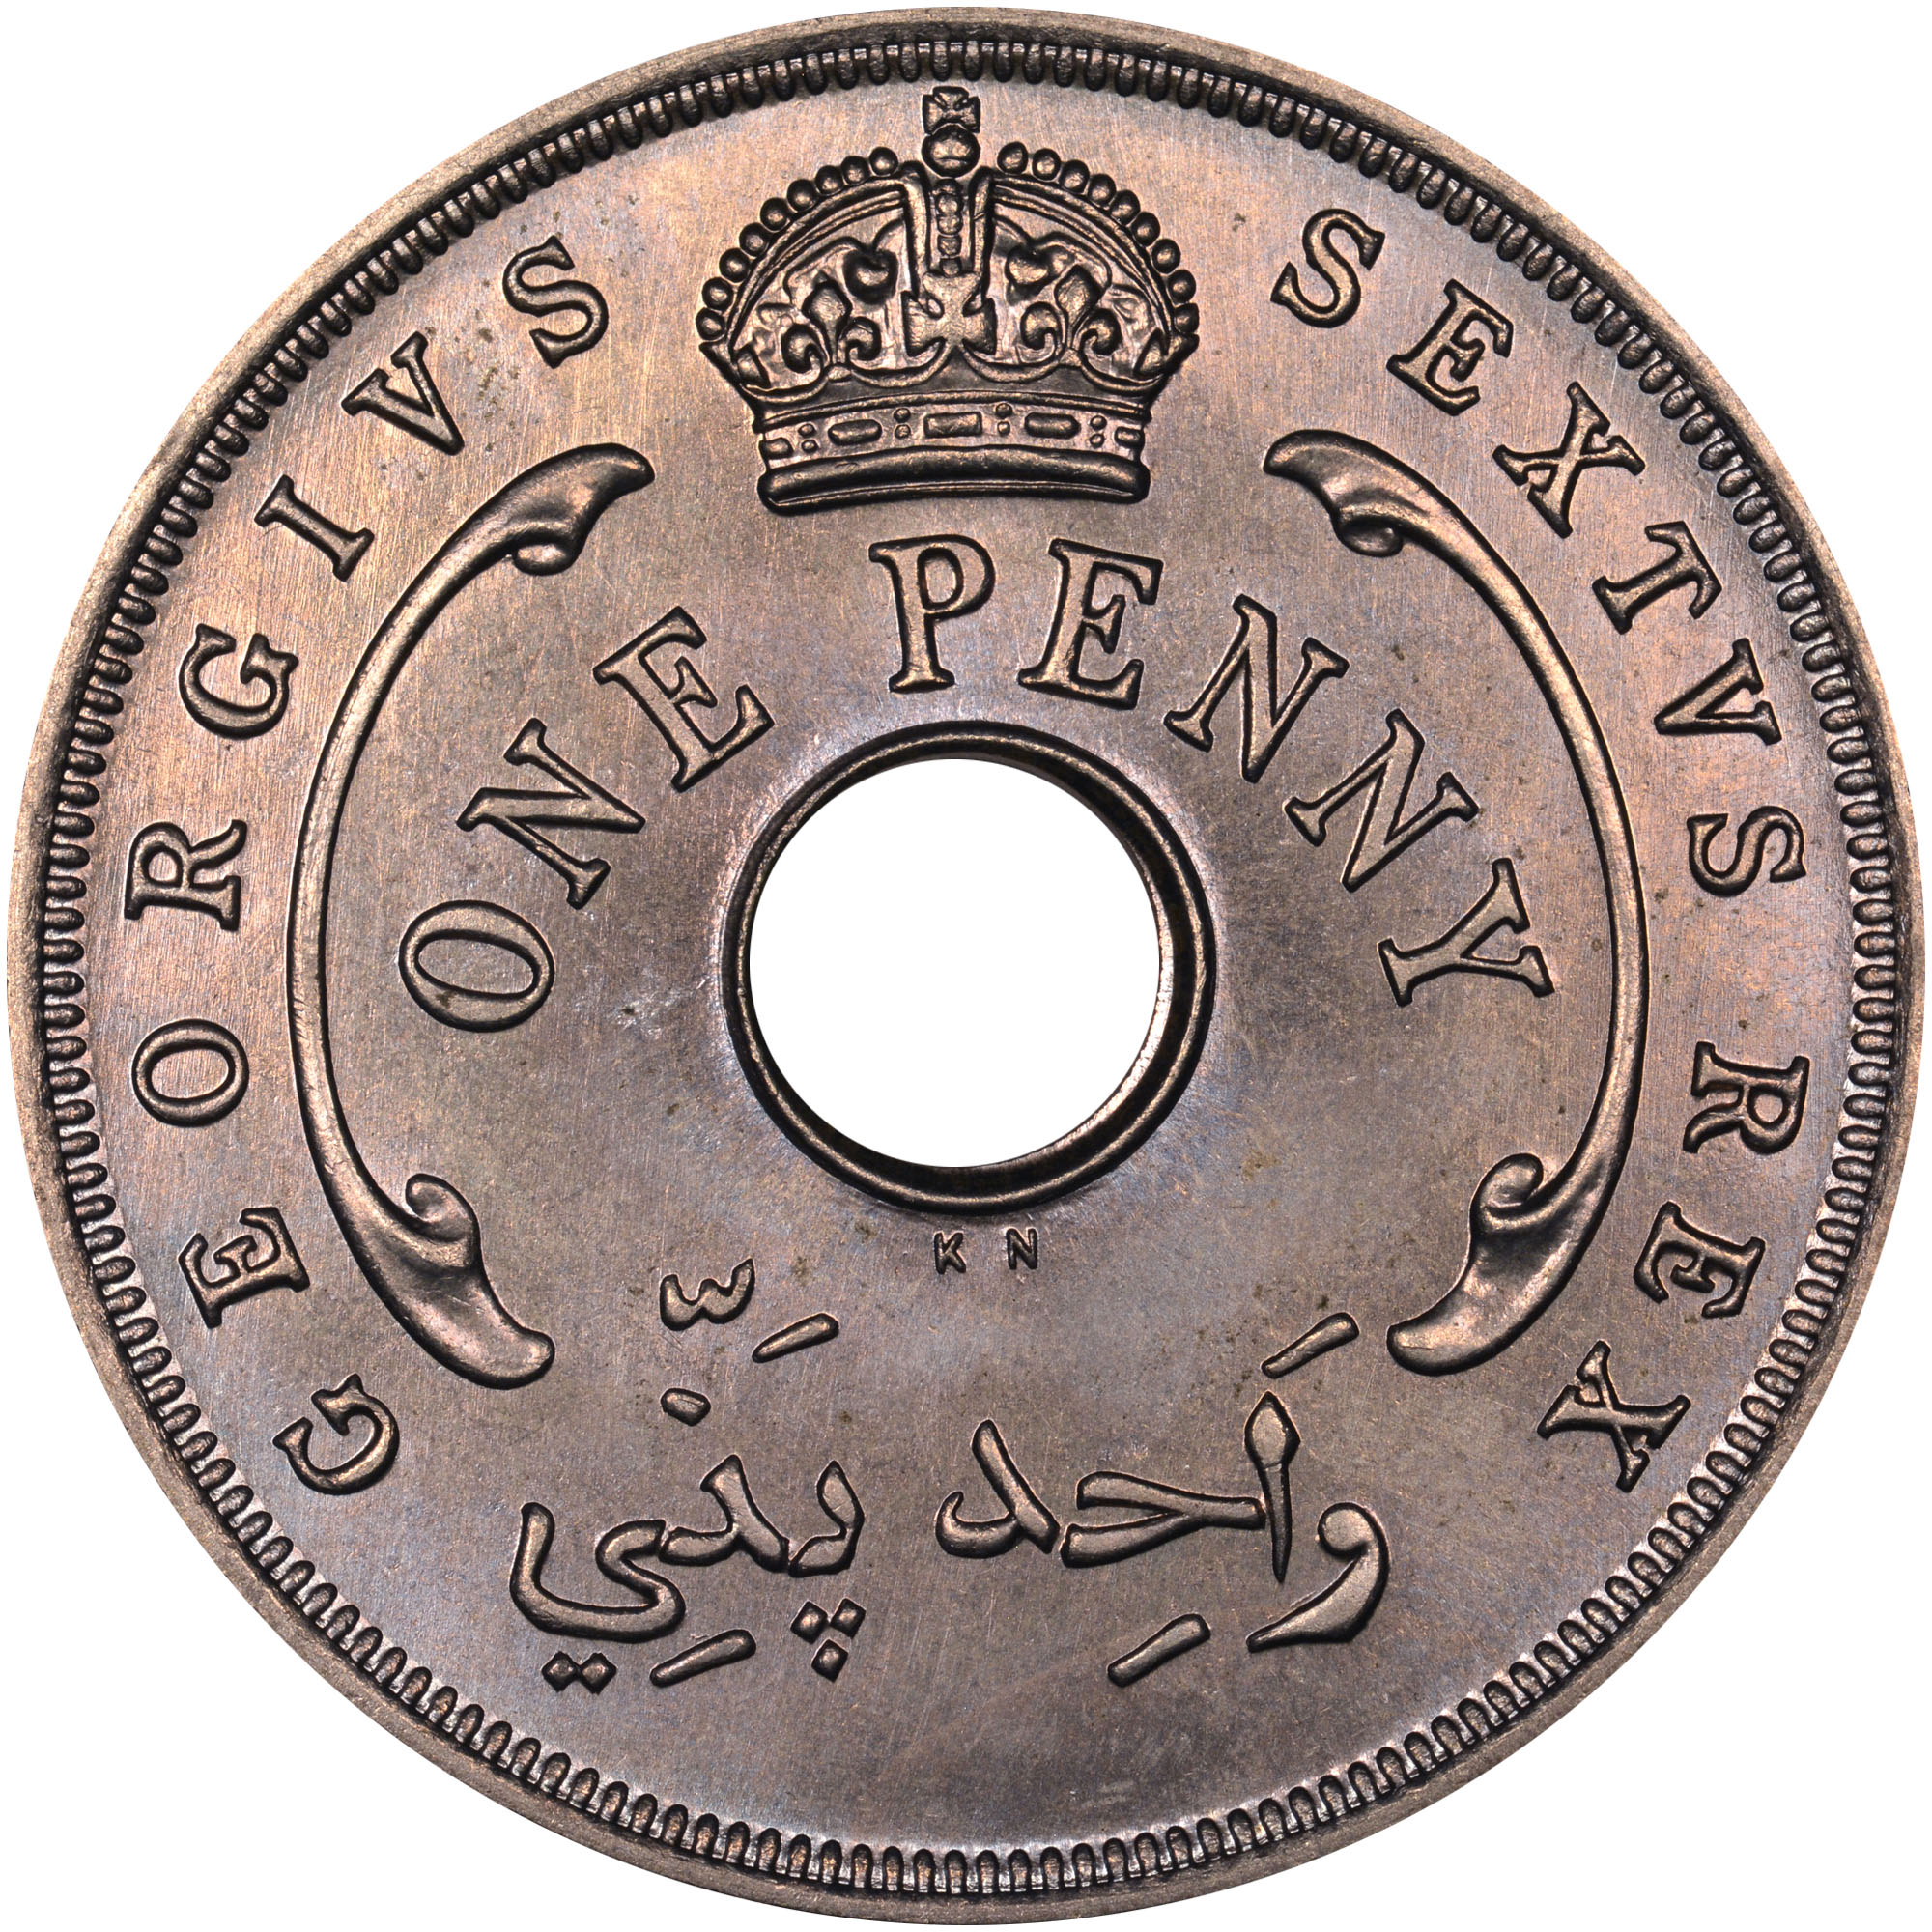 1951 British West Africa Penny obverse